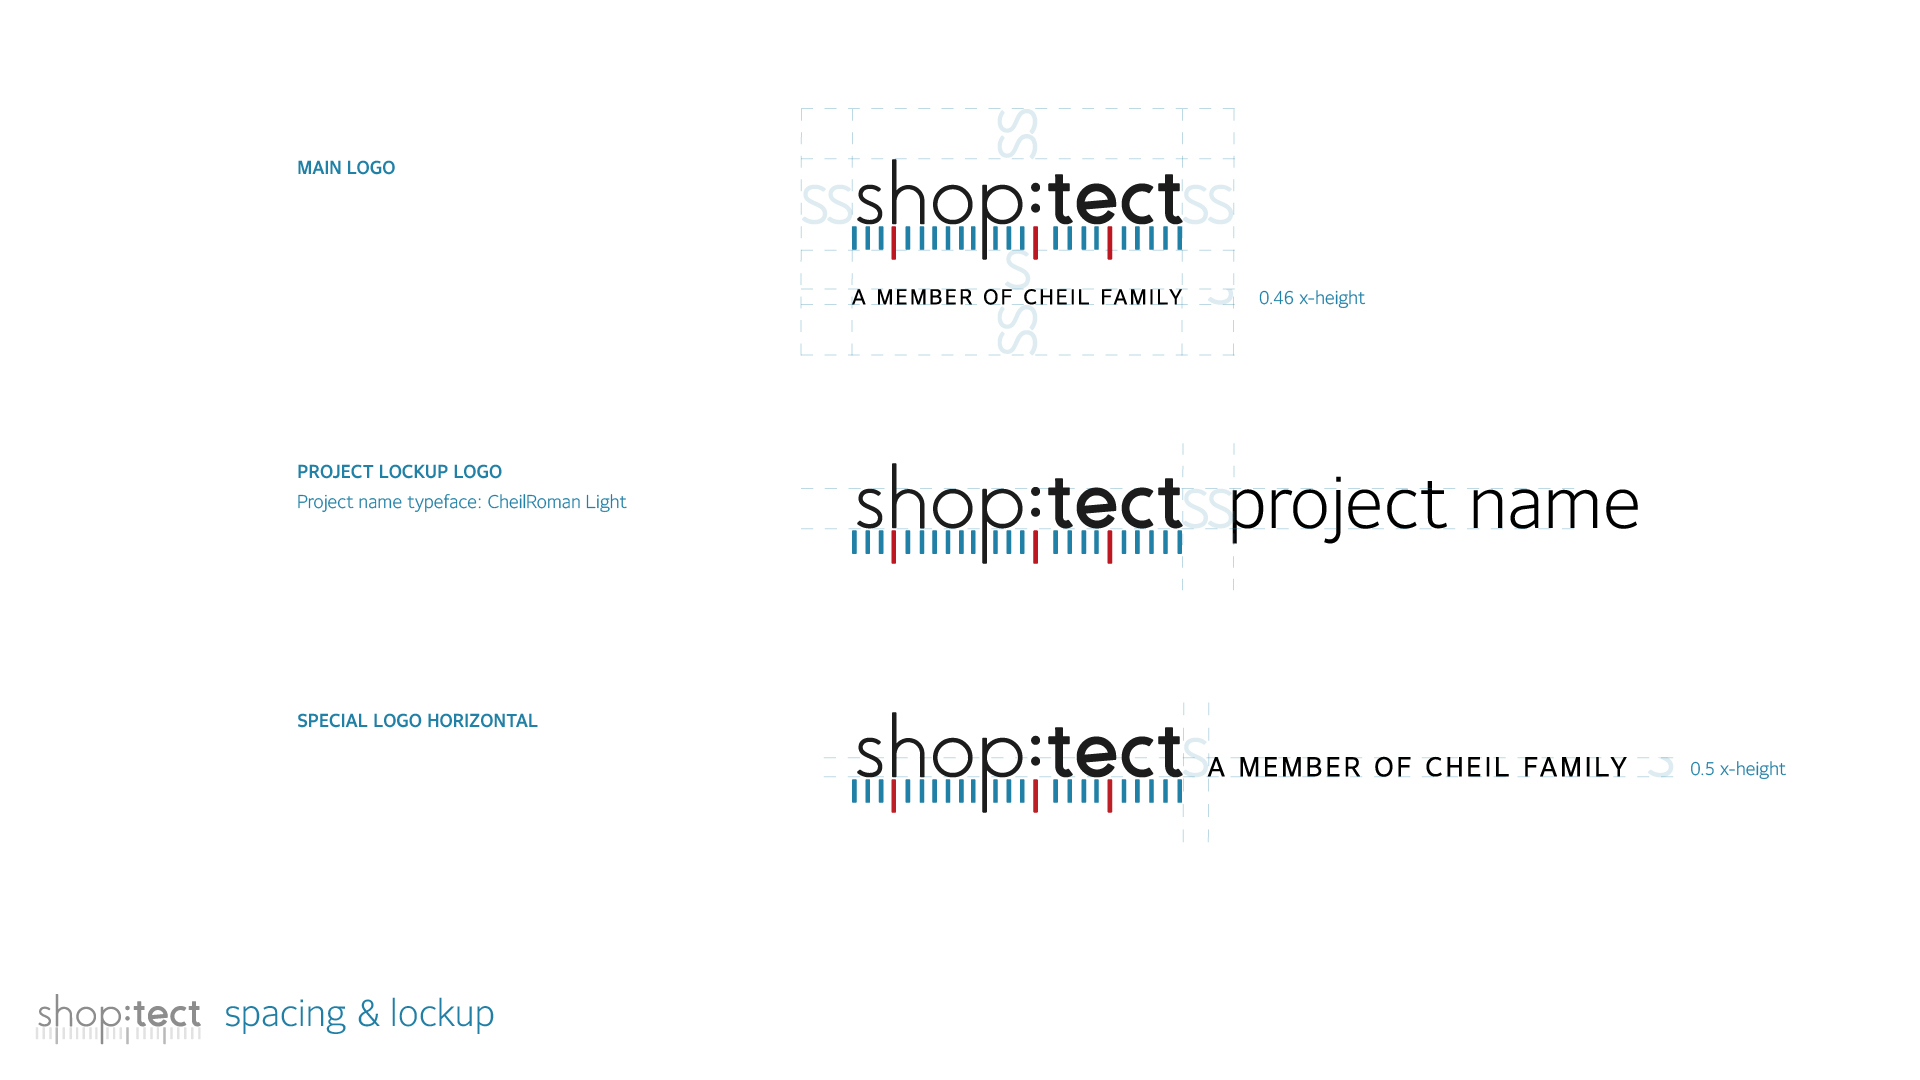 Shopitect_CI_Manual_270220194.jpg